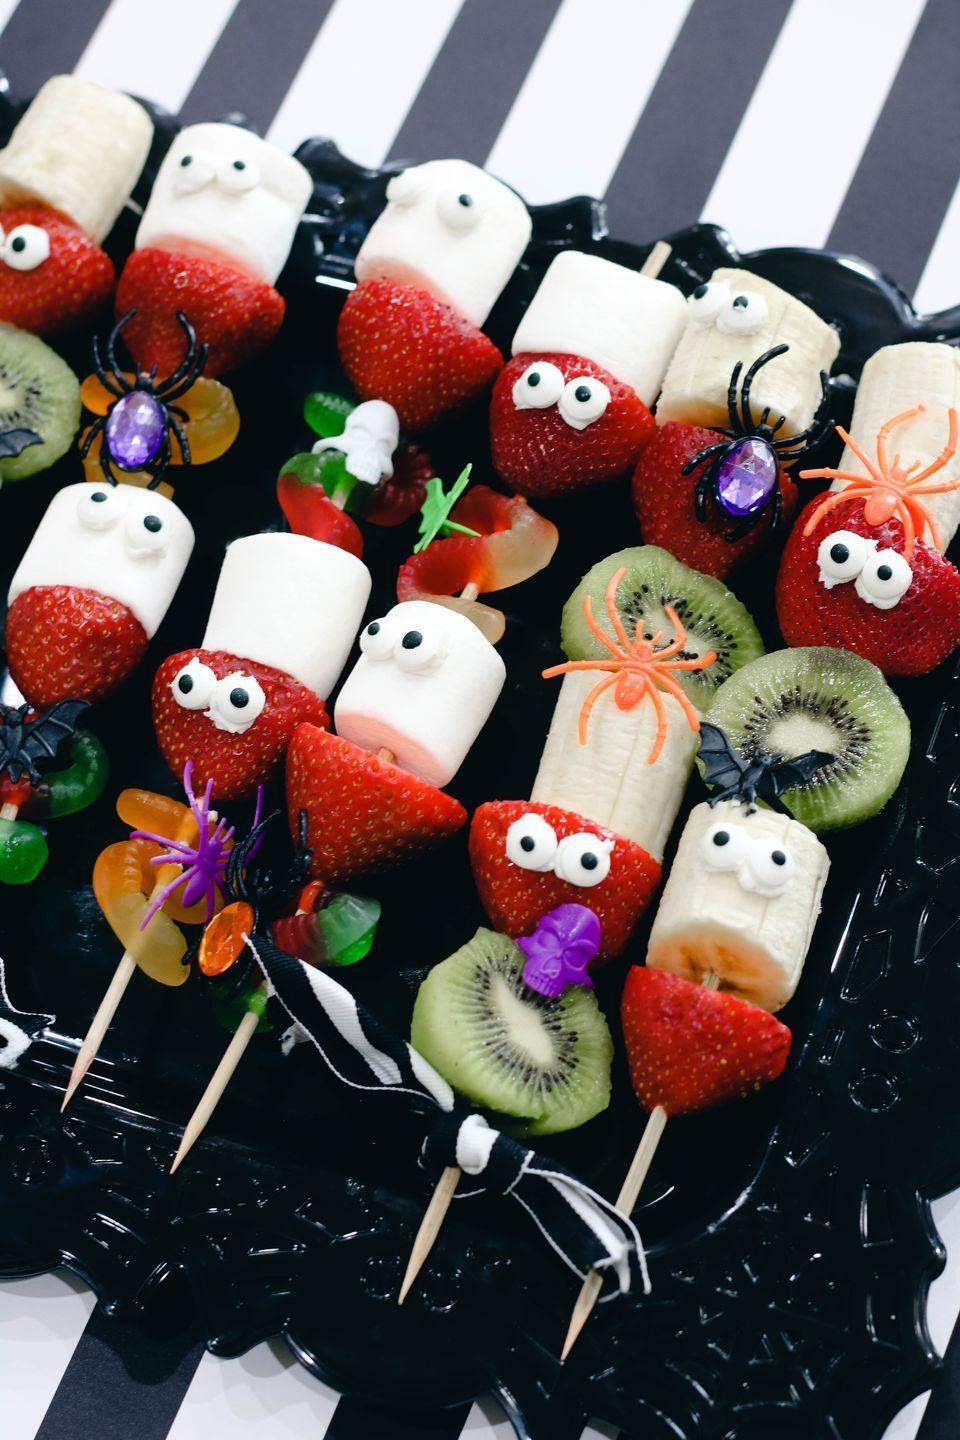 "<p>Fresh fruit and marshmallows are finished off with eyeballs for a fun and easy-to-make treat.</p><p><a class=""link rapid-noclick-resp"" href=""https://www.girllovesglam.com/halloween-skewers-healthy-and-non-healthy-versions/#more-9679"" rel=""nofollow noopener"" target=""_blank"" data-ylk=""slk:GET THE RECIPE"">GET THE RECIPE</a></p>"